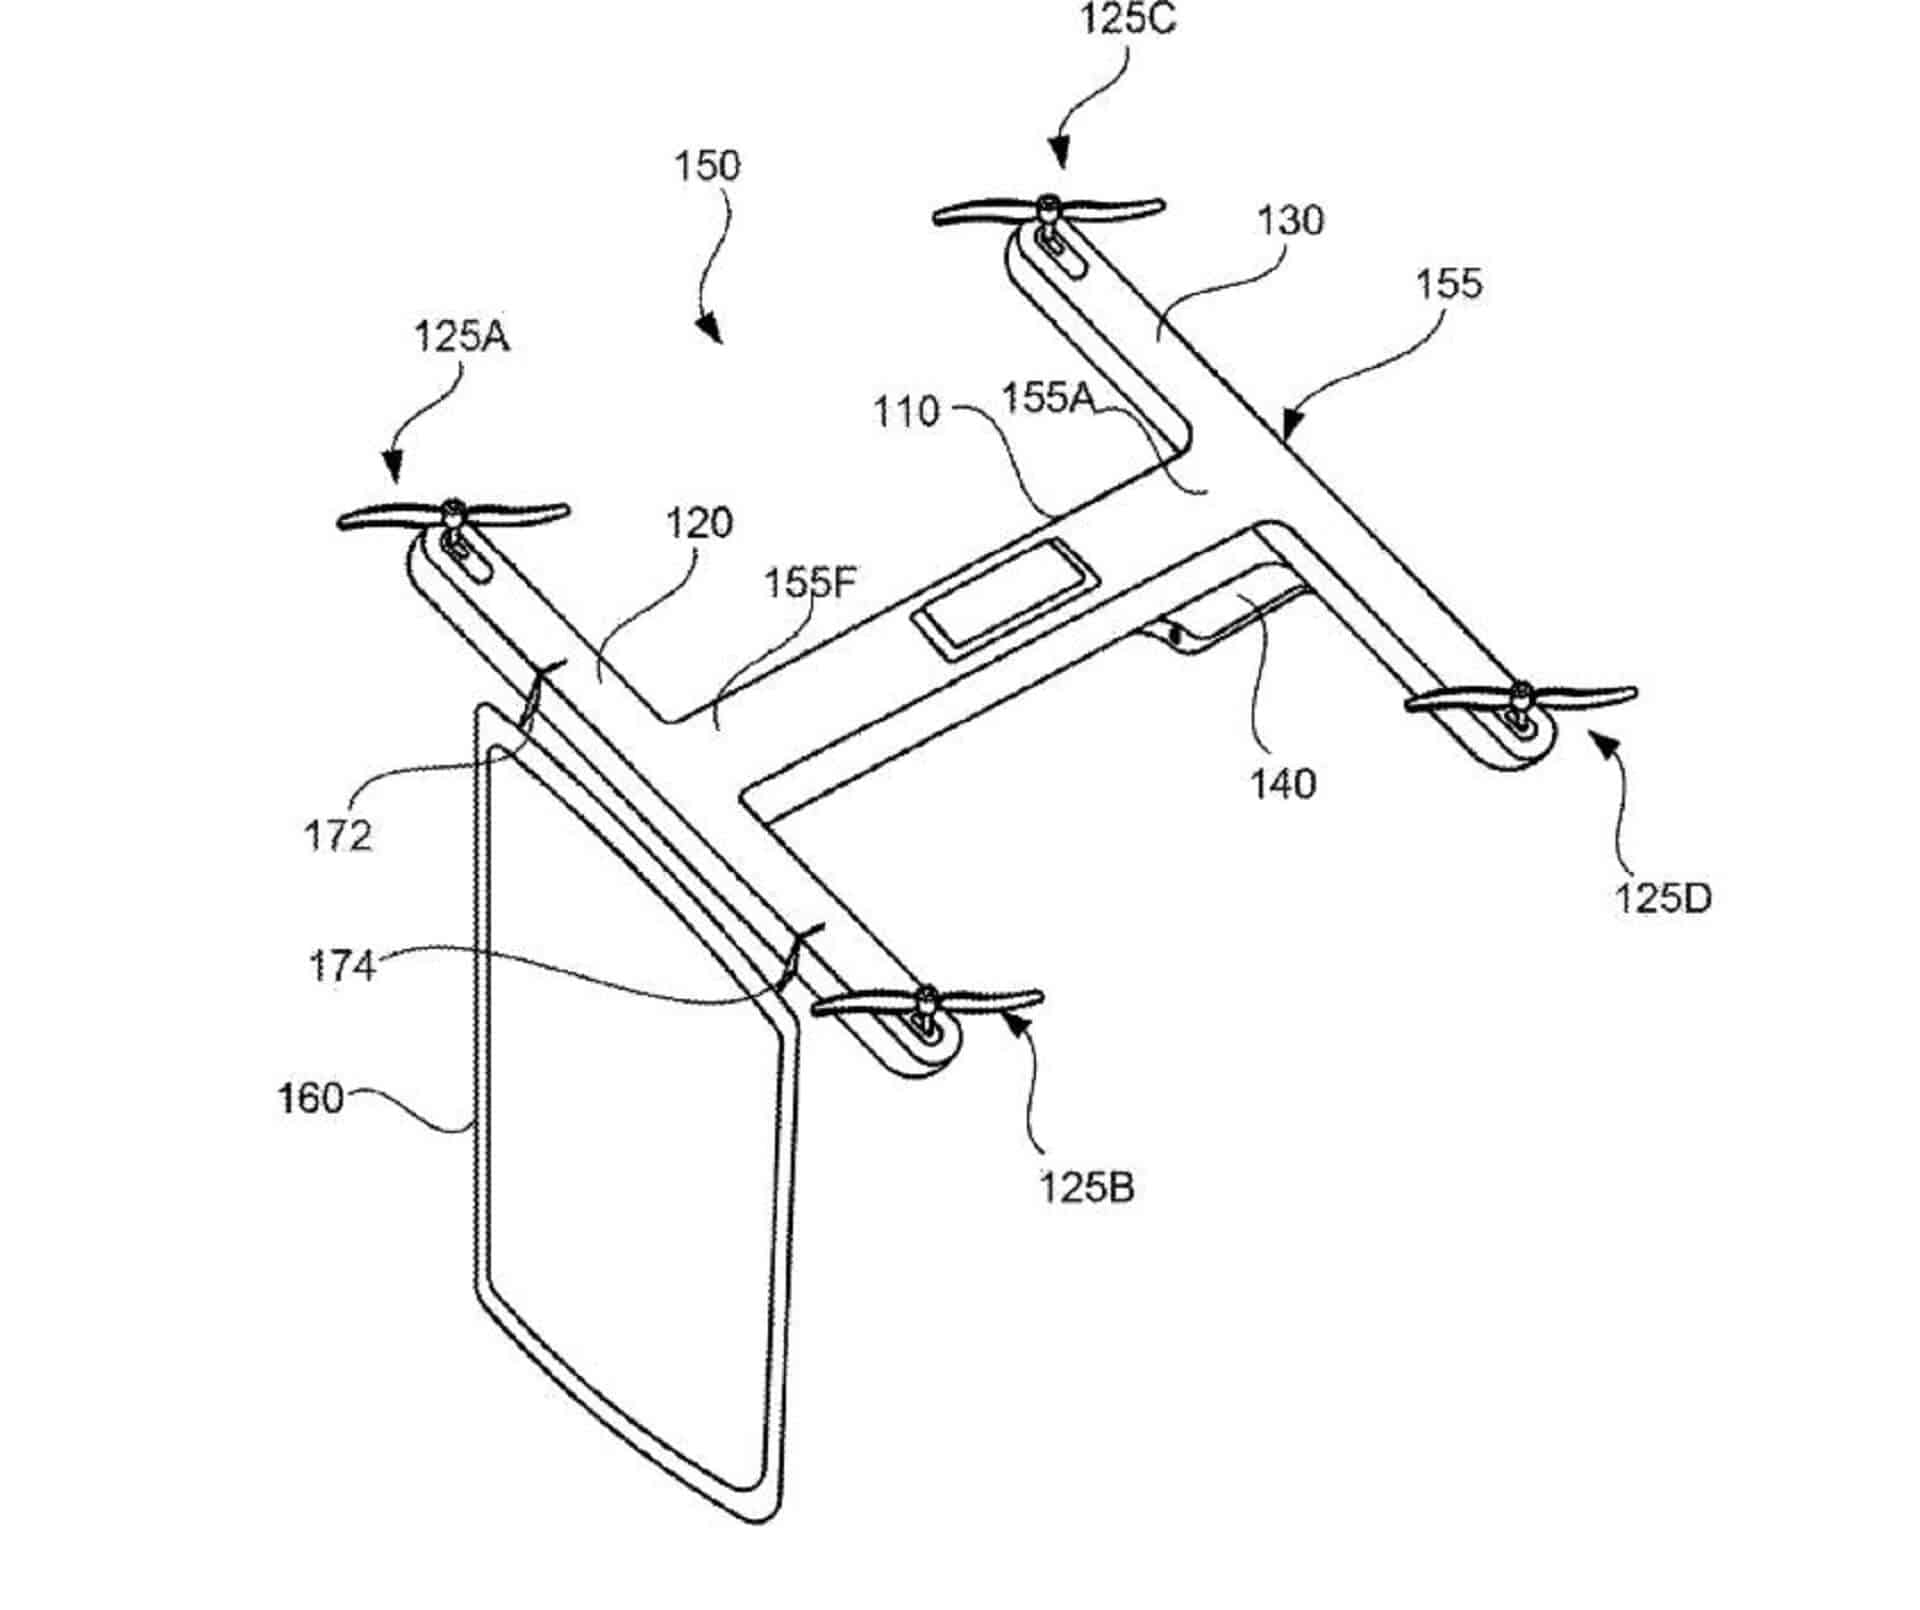 Quadcopter-Based Video Conferences Are Now A Google Patent